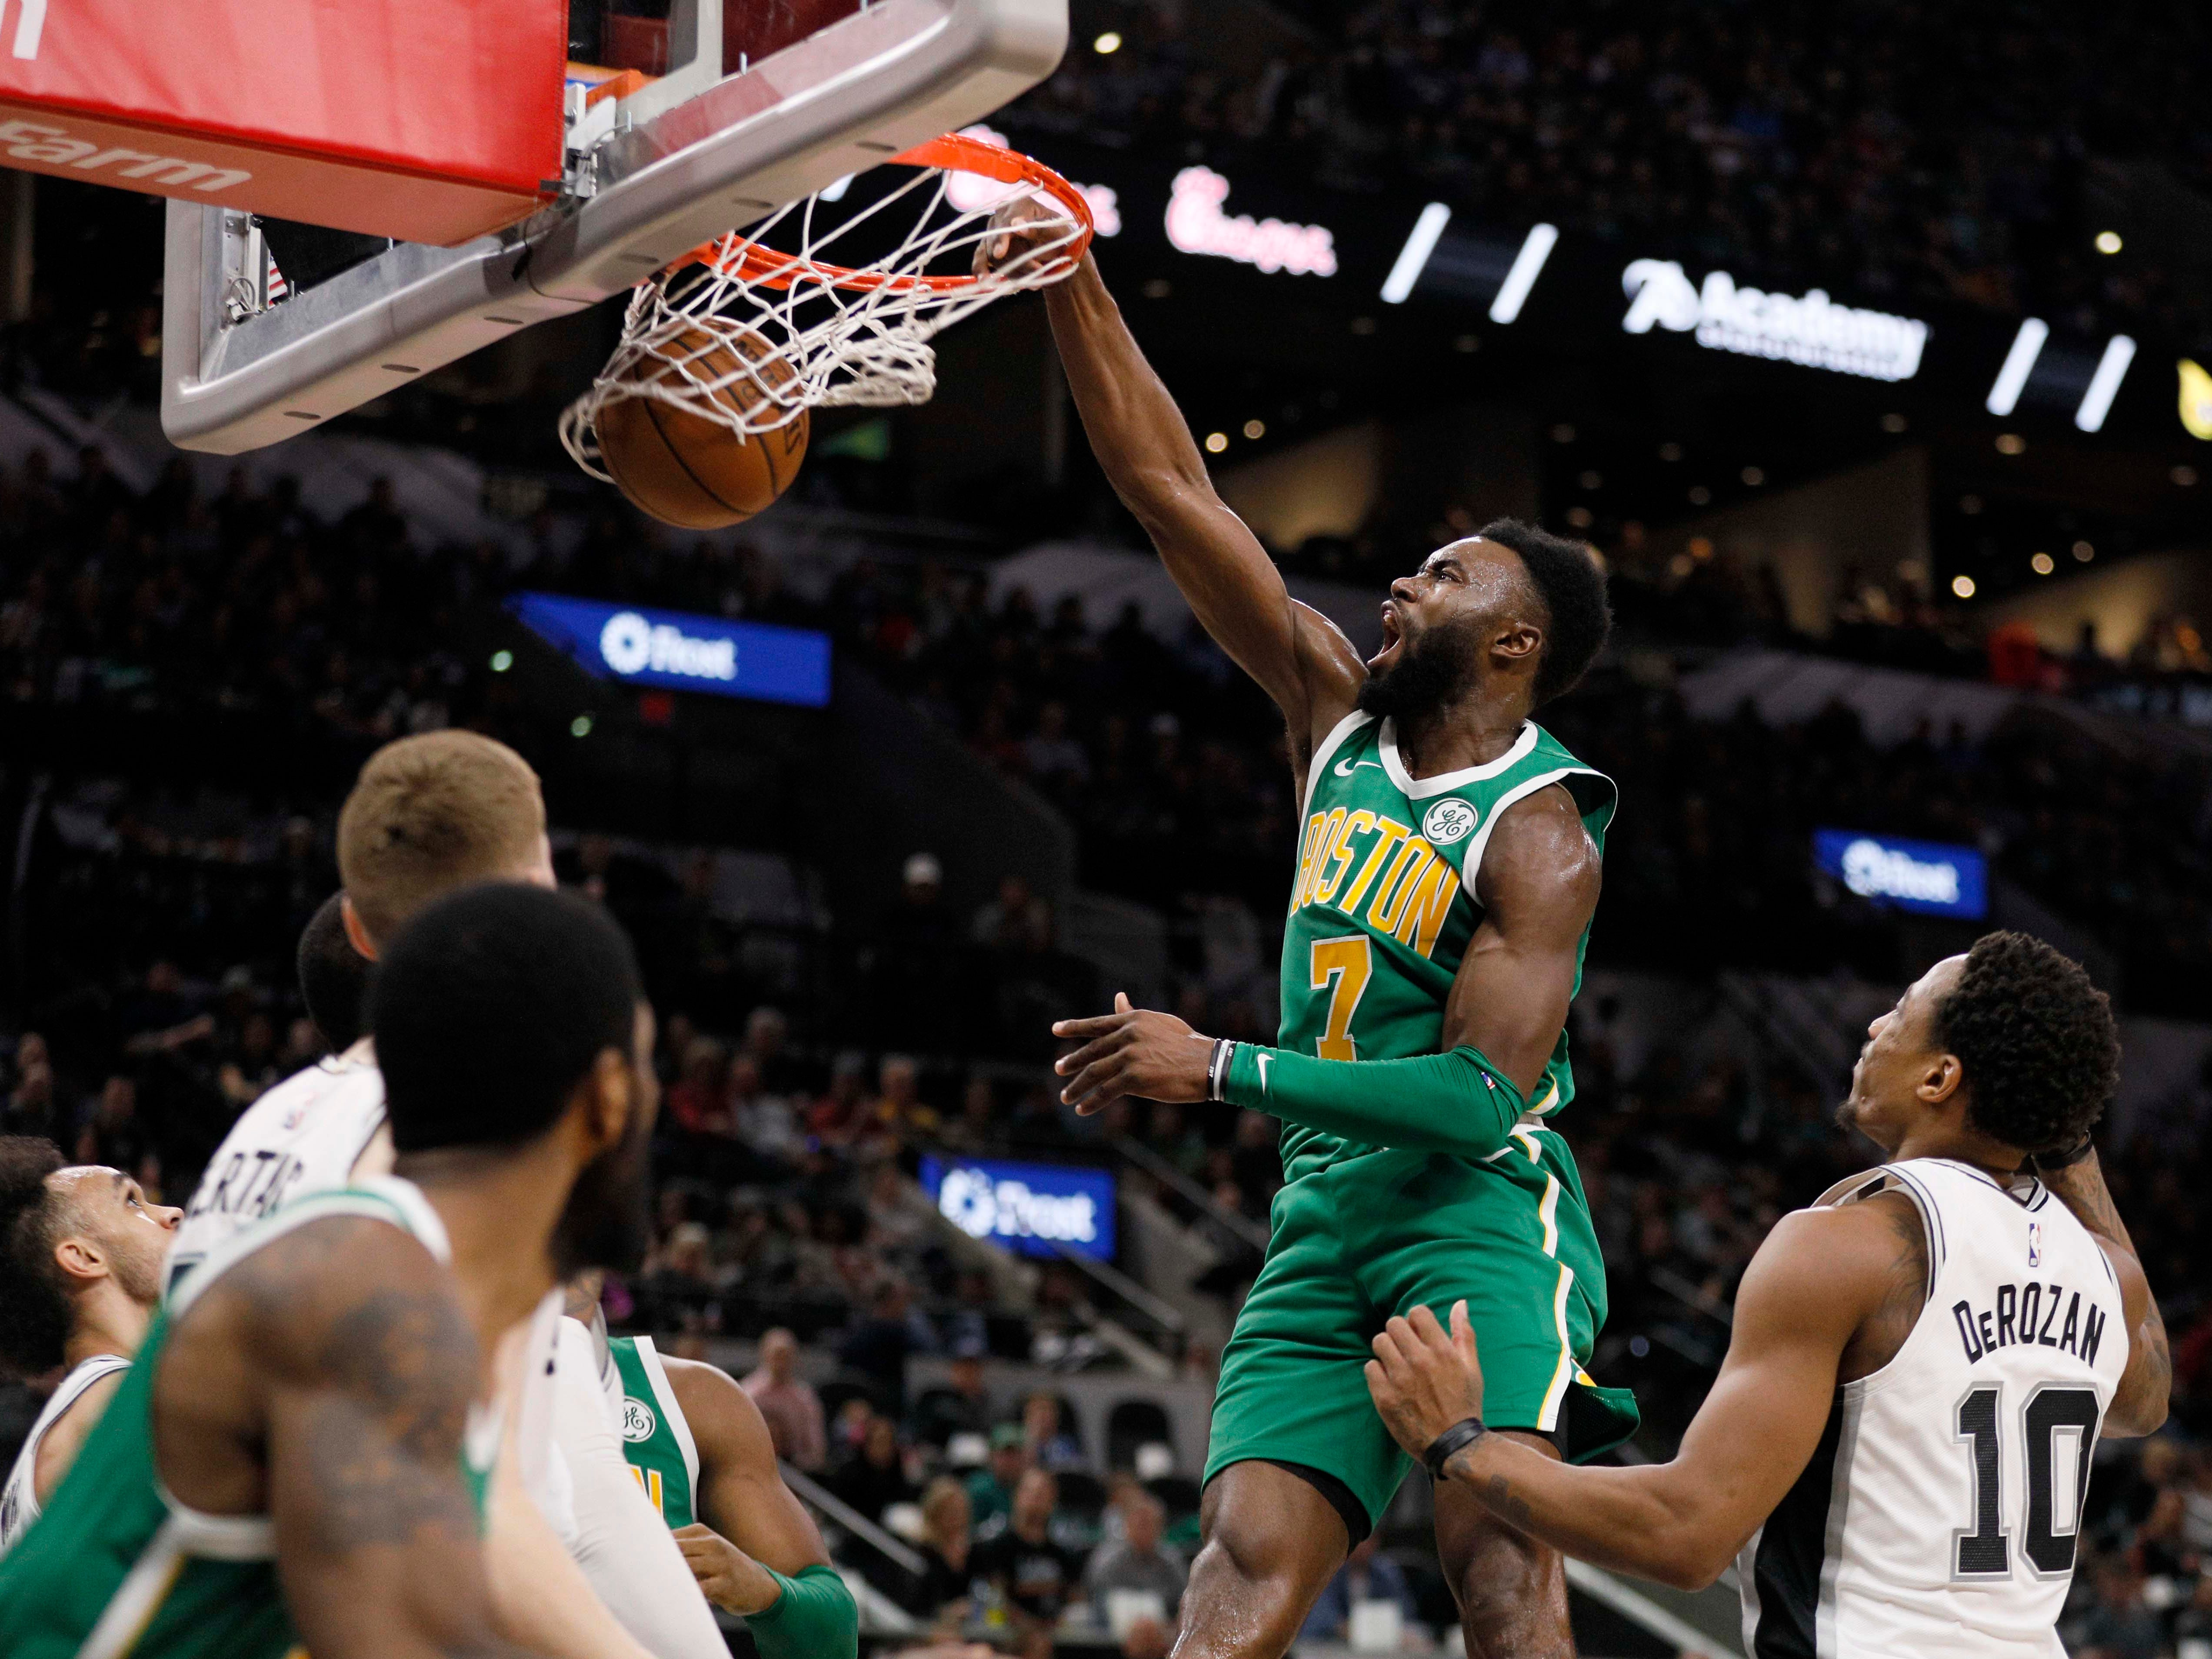 Dec. 31: The Boston Celtics' Jaylen Brown dunks the ball against the San Antonio Spurs during the first half at AT&T Center.